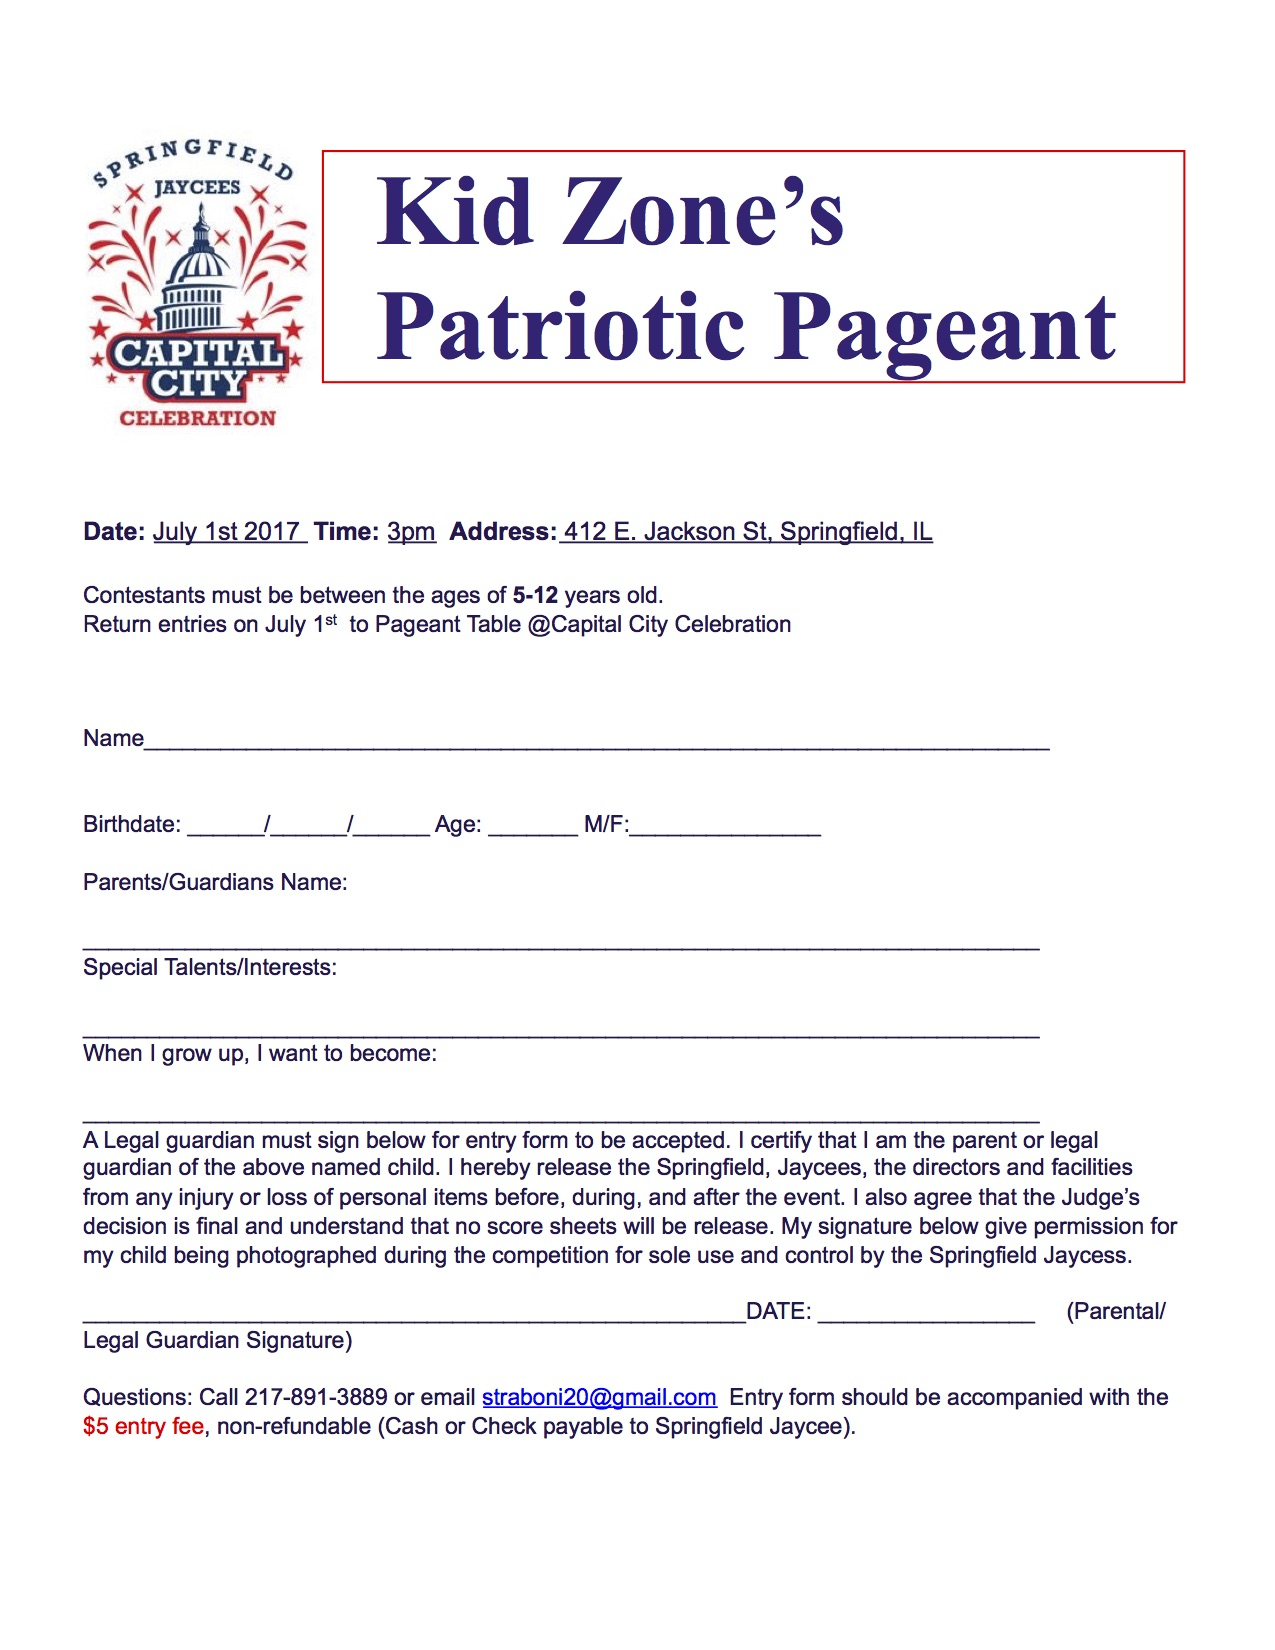 Springfield Jaycees Pageant Form